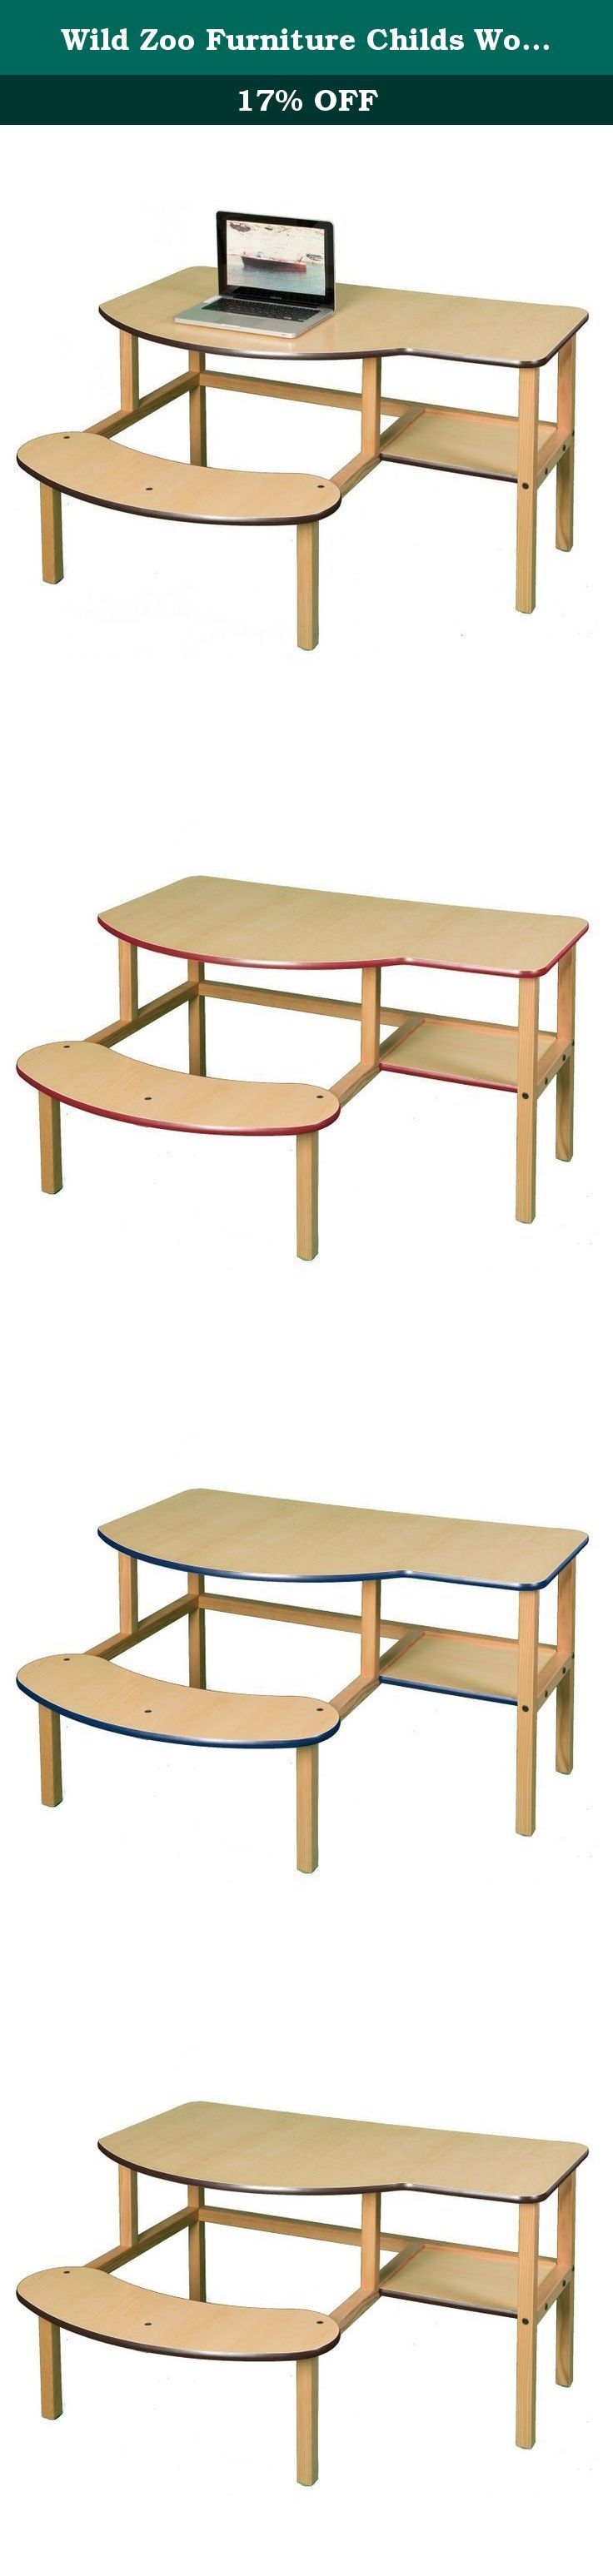 Wild Zoo Furniture Childs Wooden Computer Desk for 1 to 2 Kids, Ages 2 to 5, Maple/Brown. A computer desk designed especially for preschoolers, this desk comfortably fits one or two children ages 2 to 5 years old on the large 30.5-Inch wide seat. deep enough for a full size desktop computer with solid wood legs and frame, sturdy laminated top with rounded corners and dent resistant edge banding. the attached seat means that the desk always has a chair with it and the seat won't tip over....